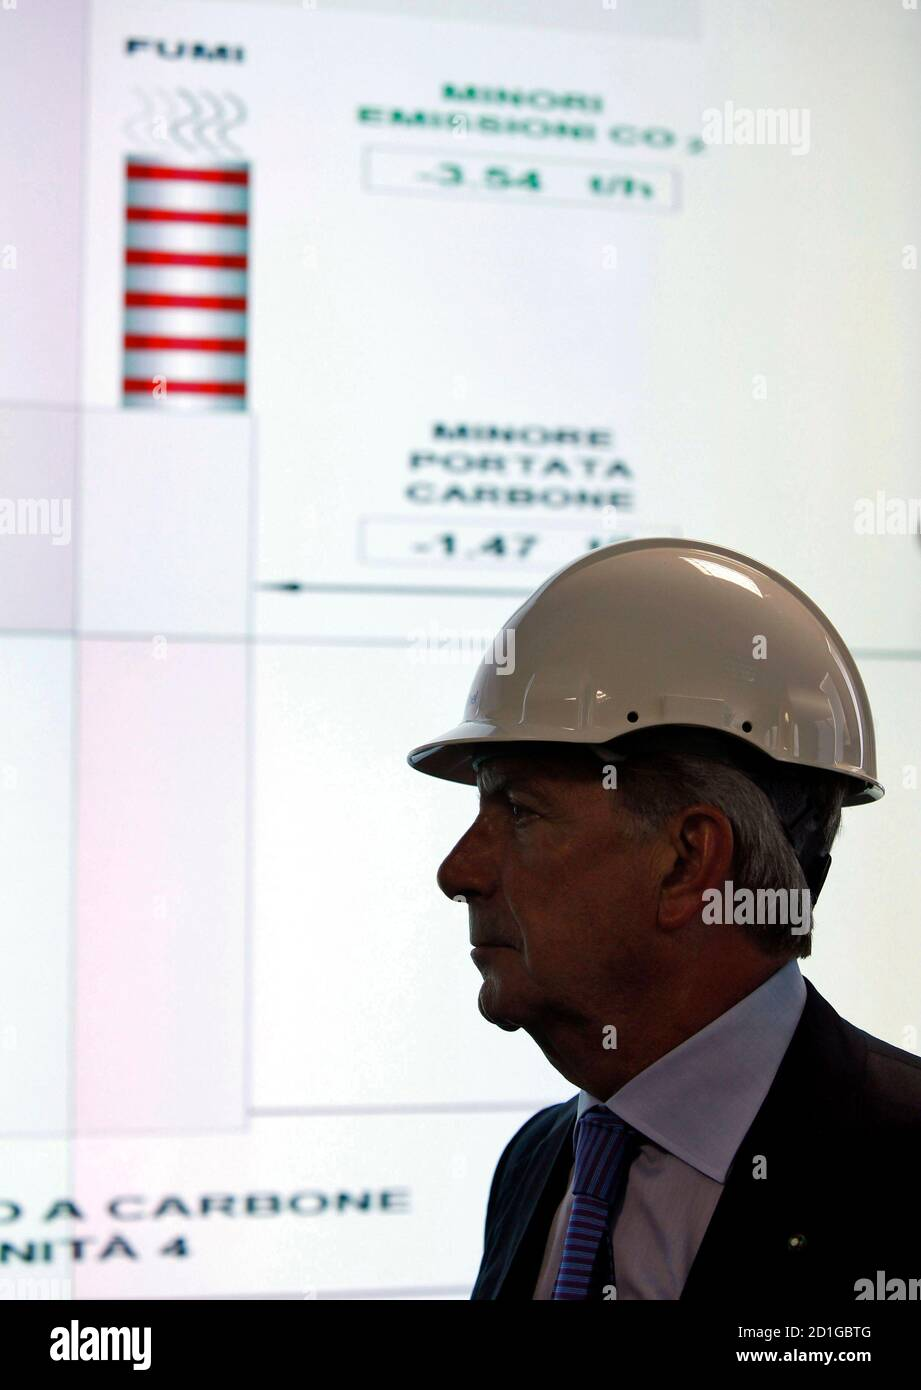 Enel SpA CEO Fulvio Conti looks on in the control room of the new hydrogen-fuelled combined cycle power plant inside the Andrea Palladio Fusina plant in Venice July 12, 2010. Italy's largest utility Enel SpA <ENEI.MI> aims to start converting a major oil-fuelled power plant to use clean coal technology next year as part of its drive to cut carbon emissions, Conti said on Monday. REUTERS/Alessandro Garofalo (ITALY - Tags: BUSINESS ENERGY) Stock Photo